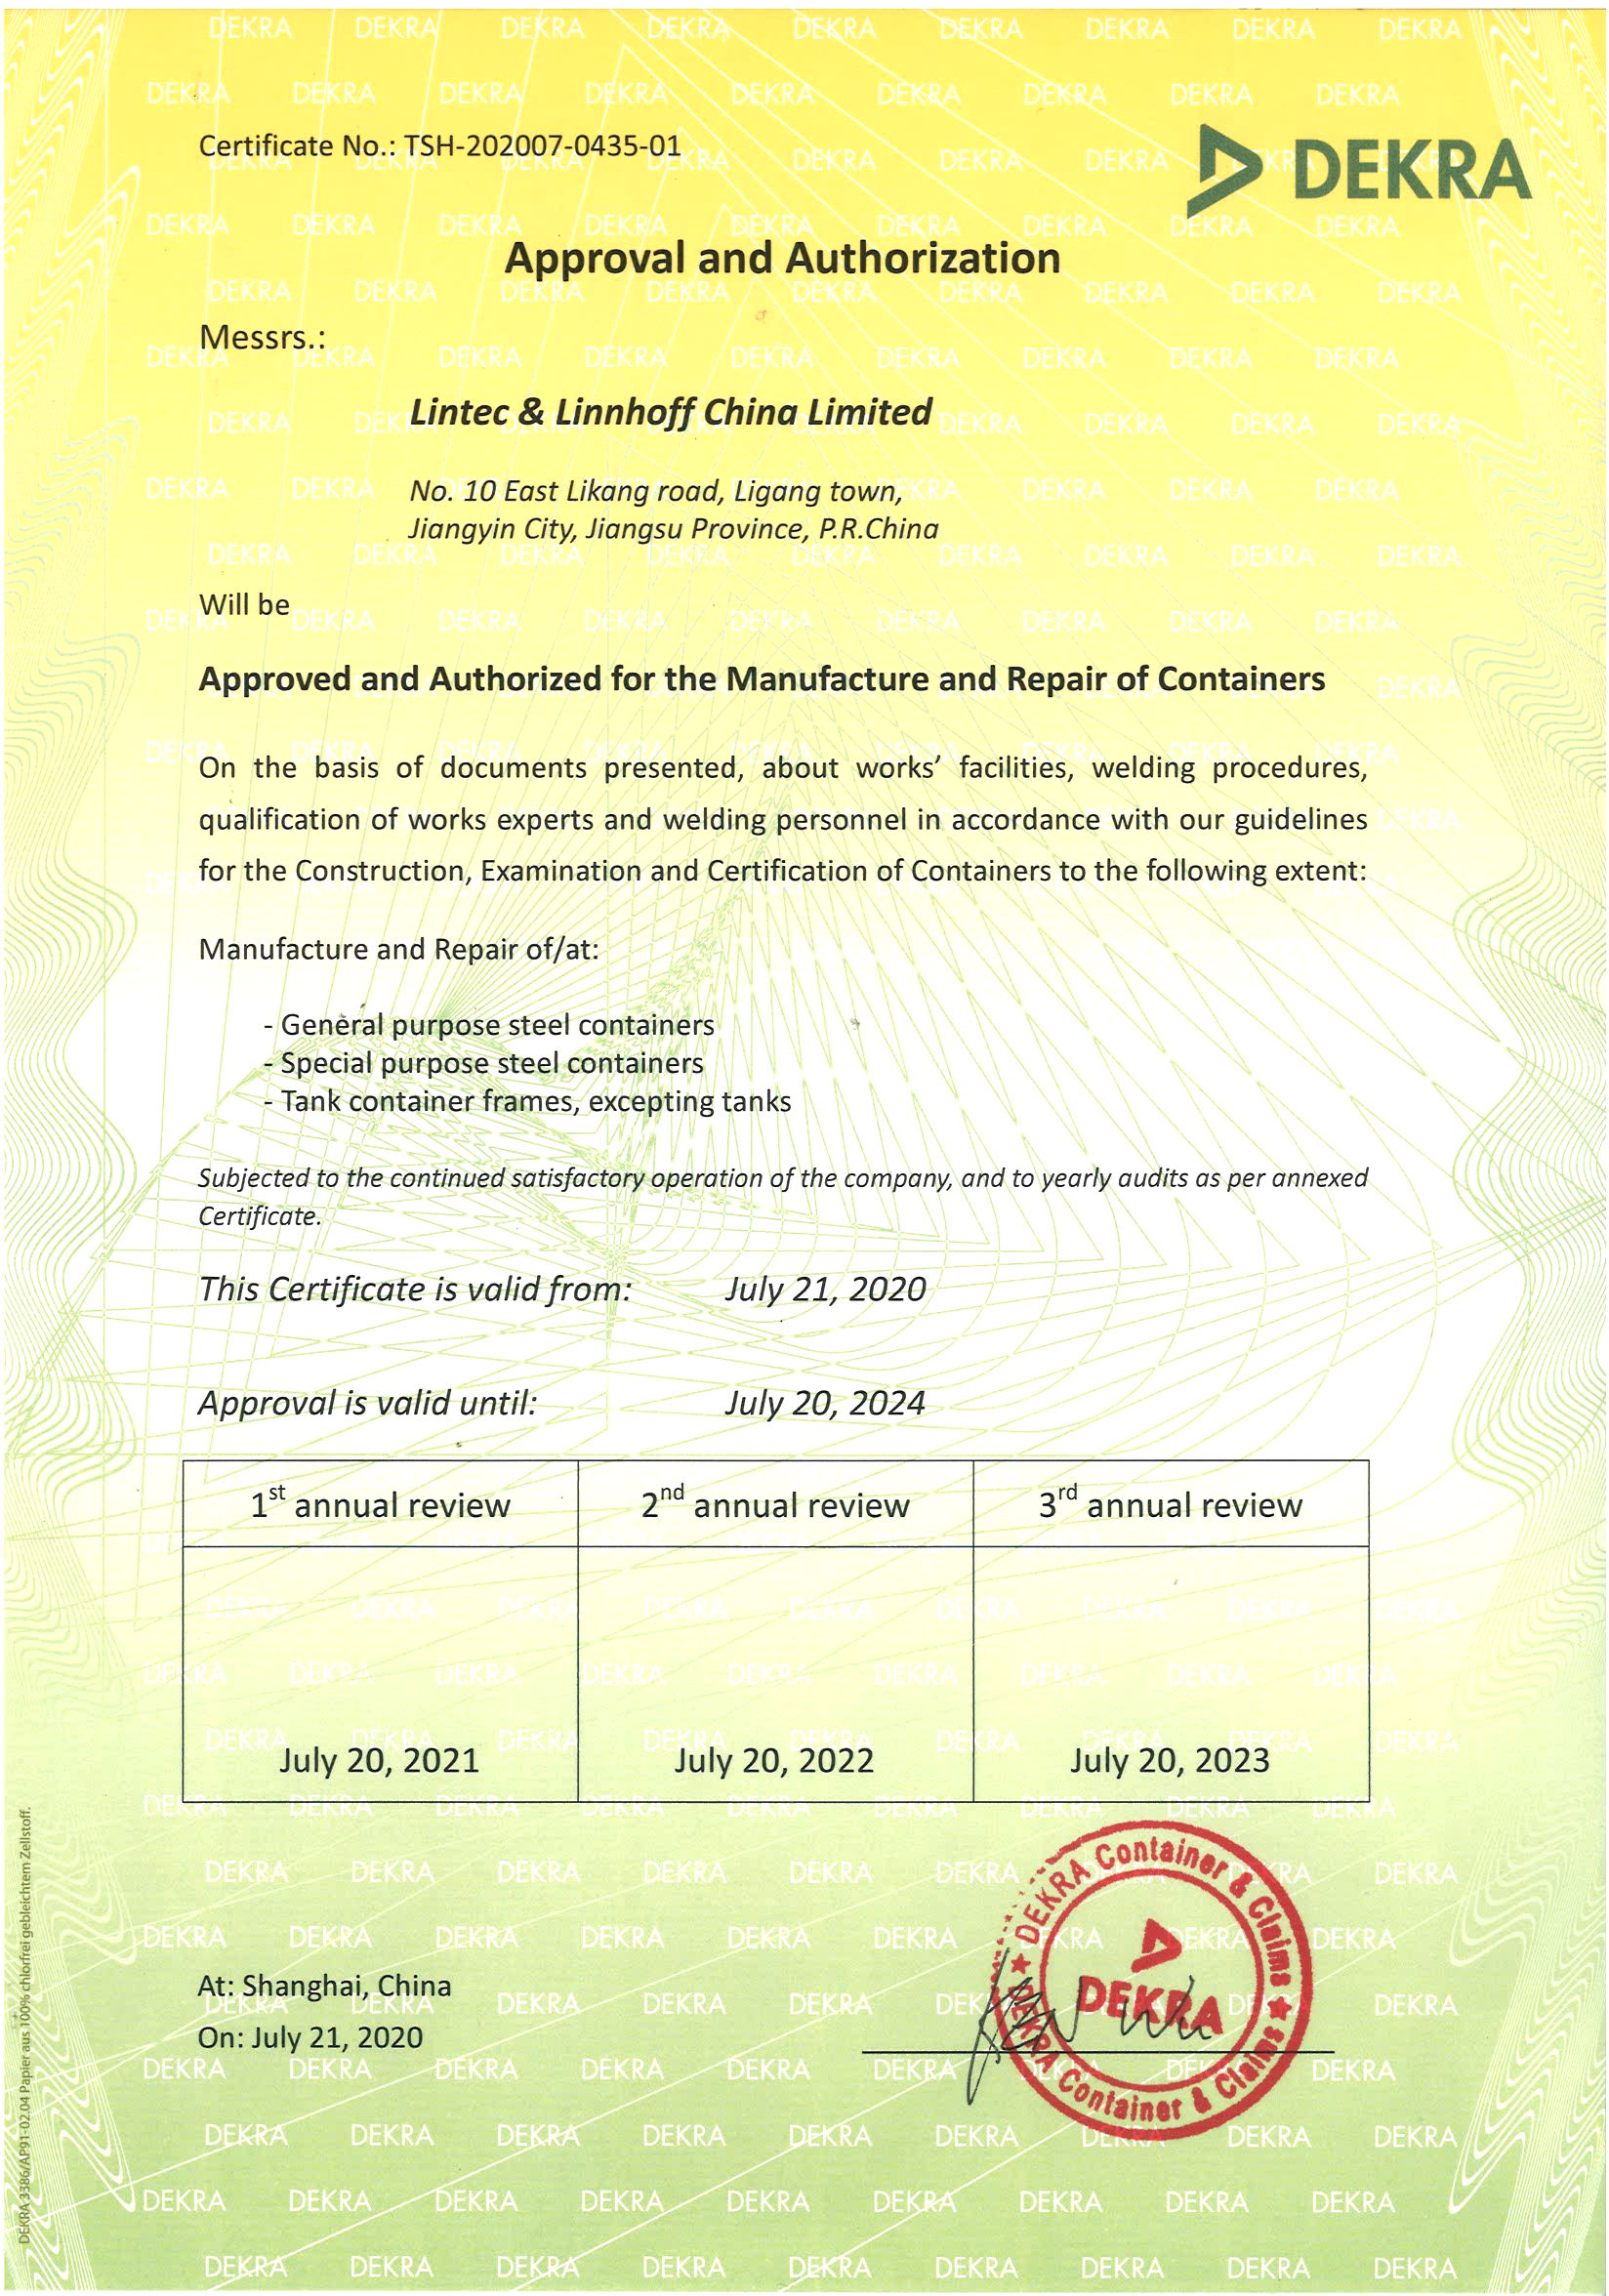 Dekra Approval & Authorization for the Manufacturing & Repair of Containers